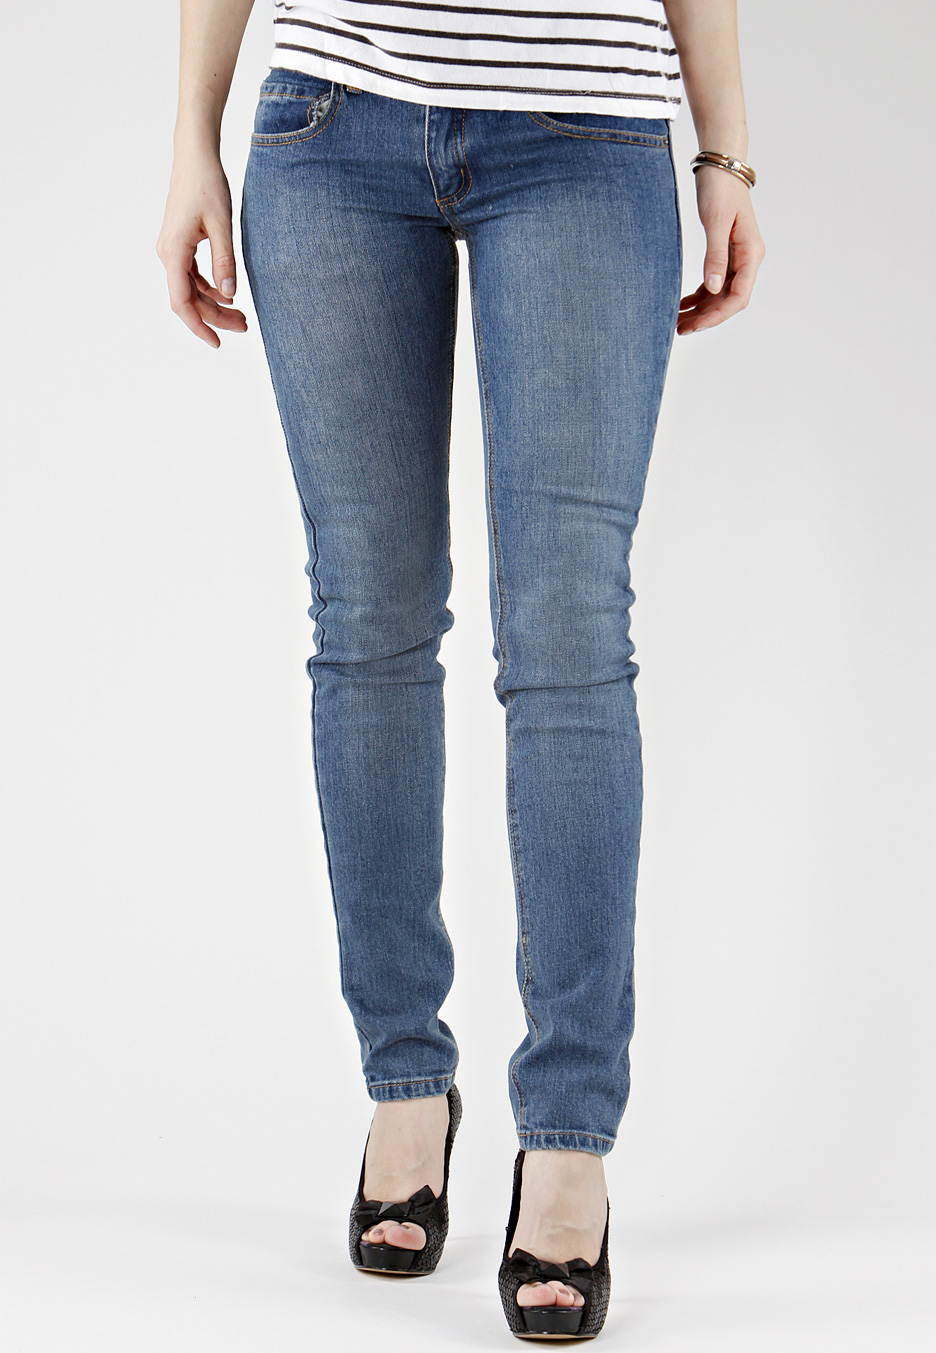 Cheapmonday ziplowusa blue girl jeans | Leggings Tights Jeans u0026 Socks | Pinterest | Jeans The ...